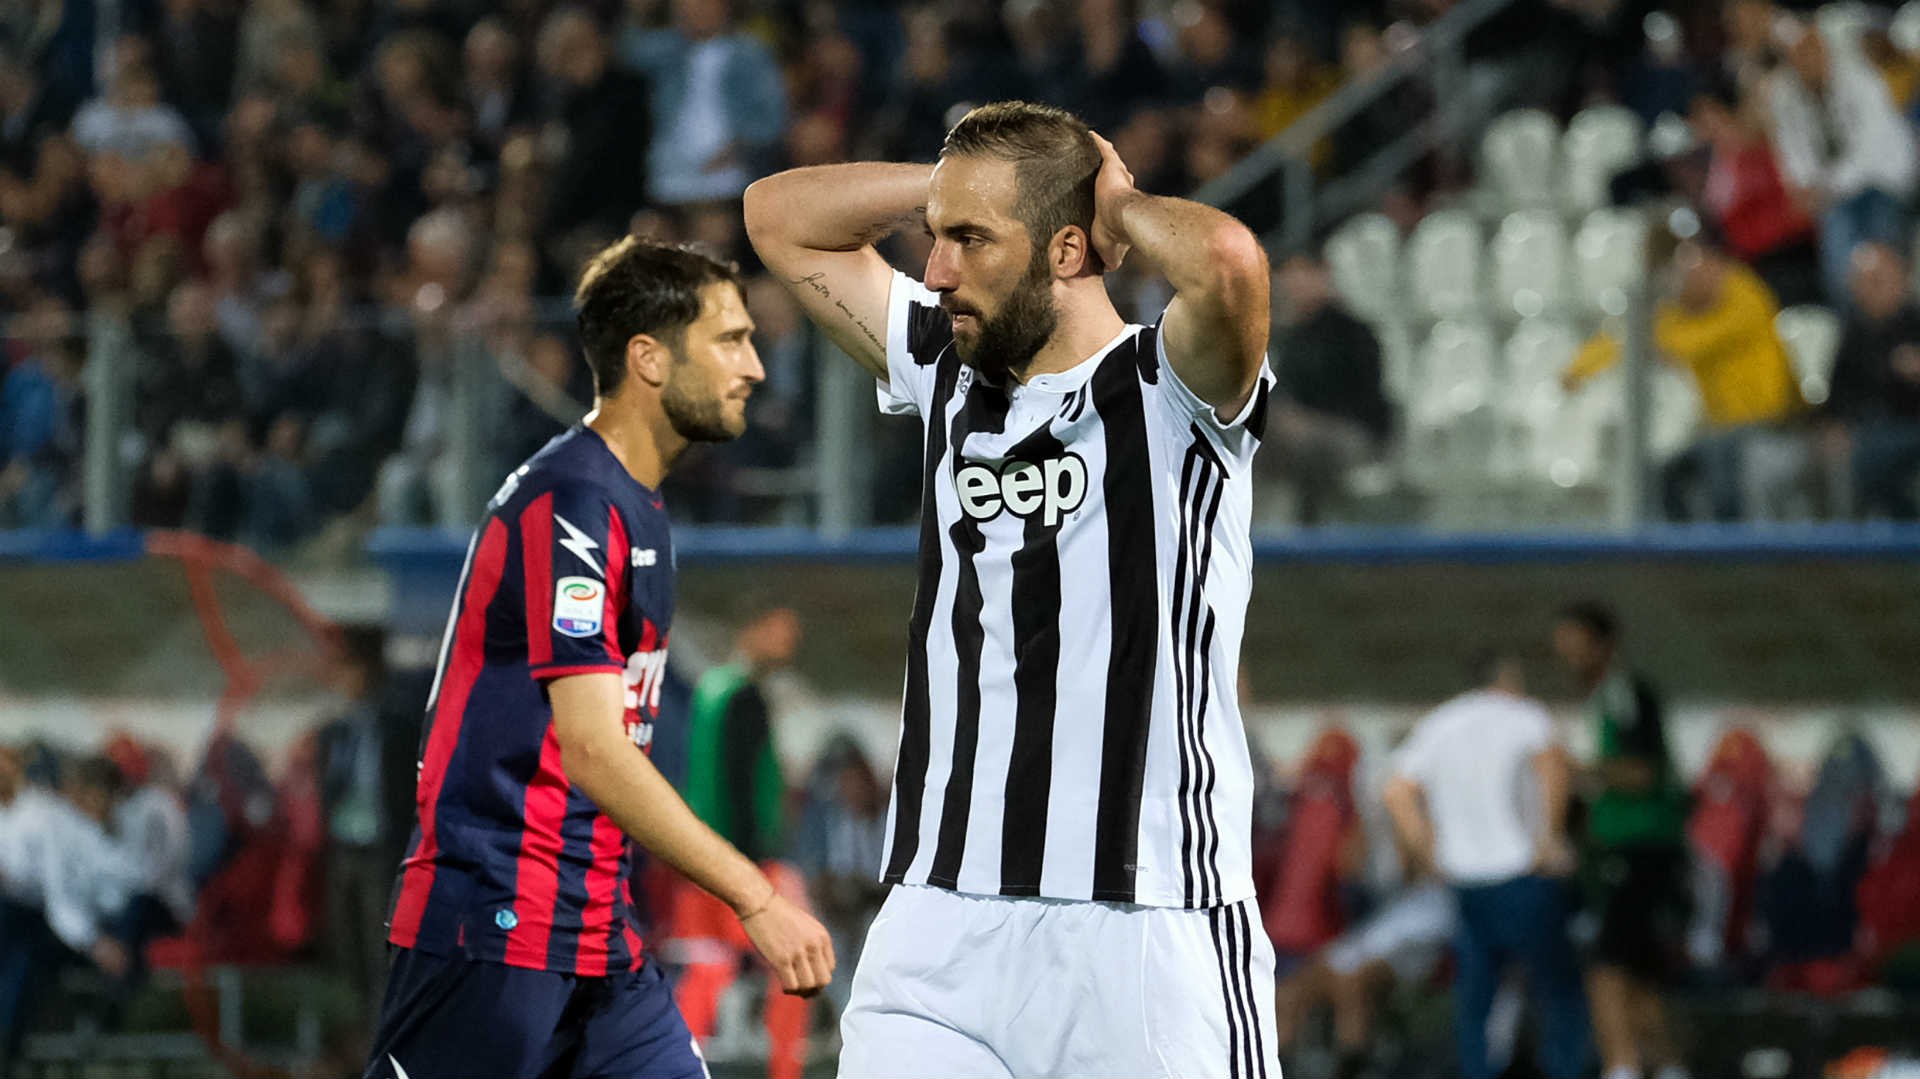 Naples en direct: Juventus Turin